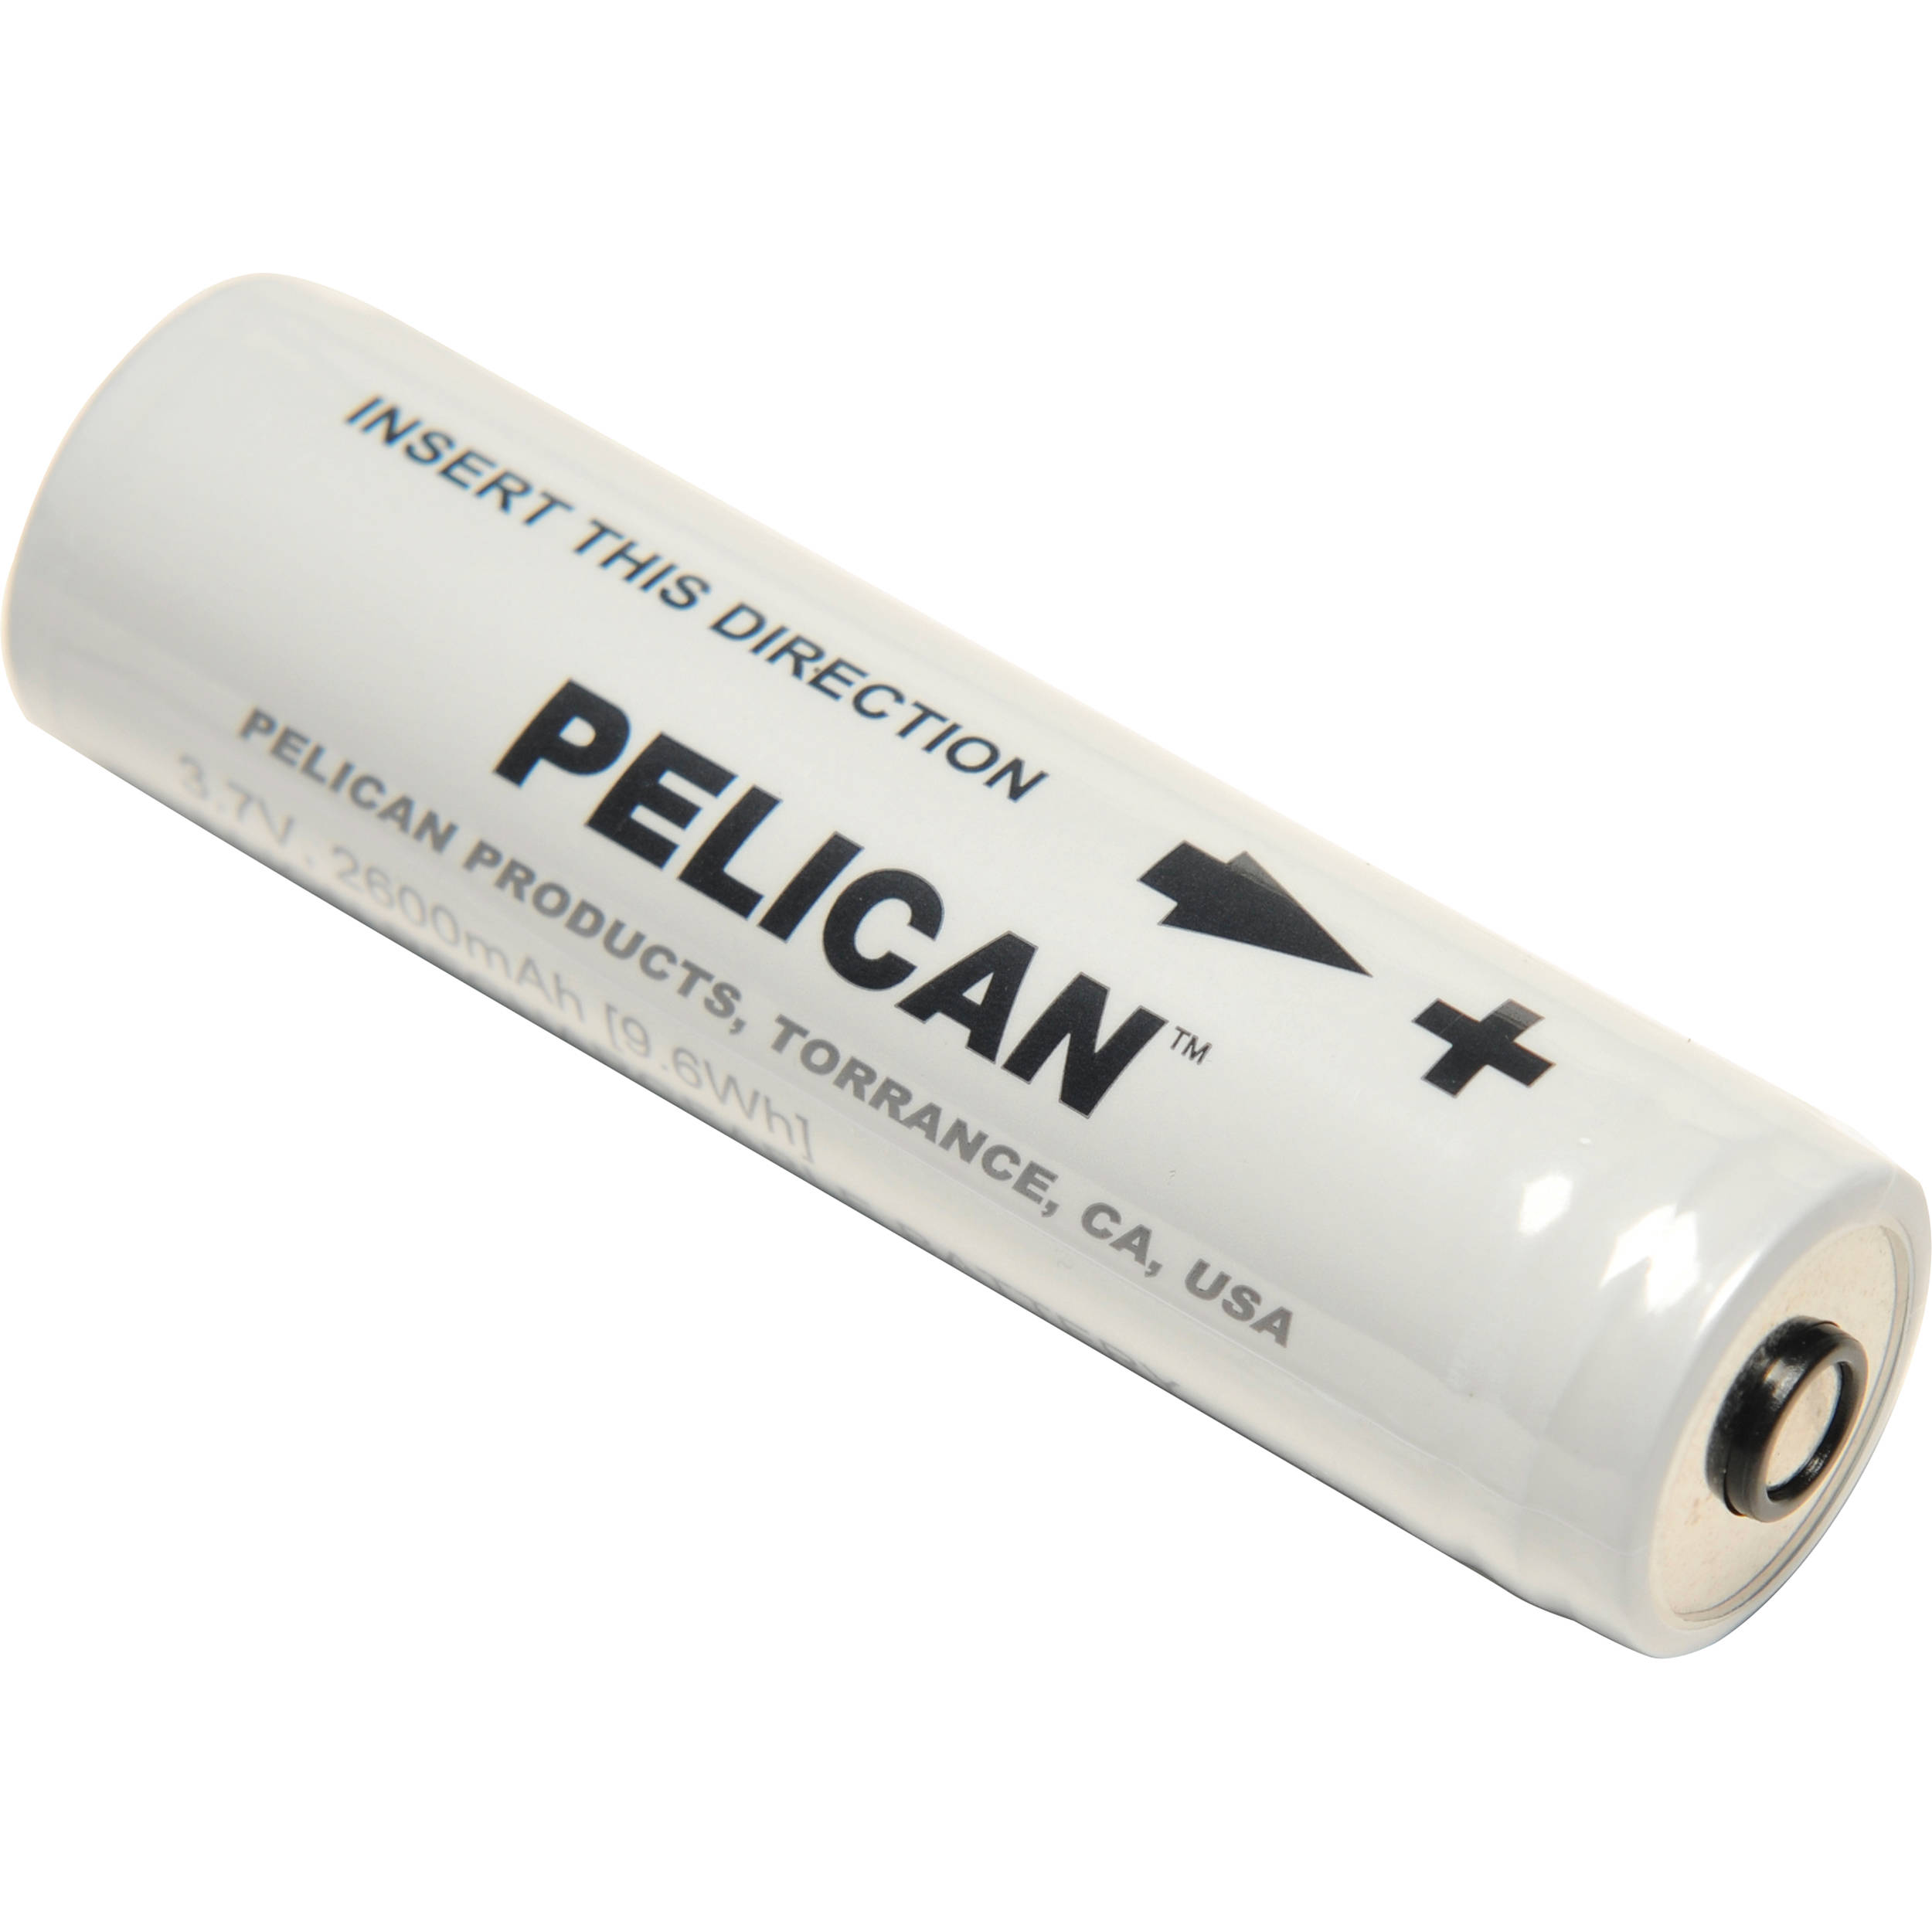 Pelican Rechargeable 18650 Lithium Ion Battery 02380r 3010 000